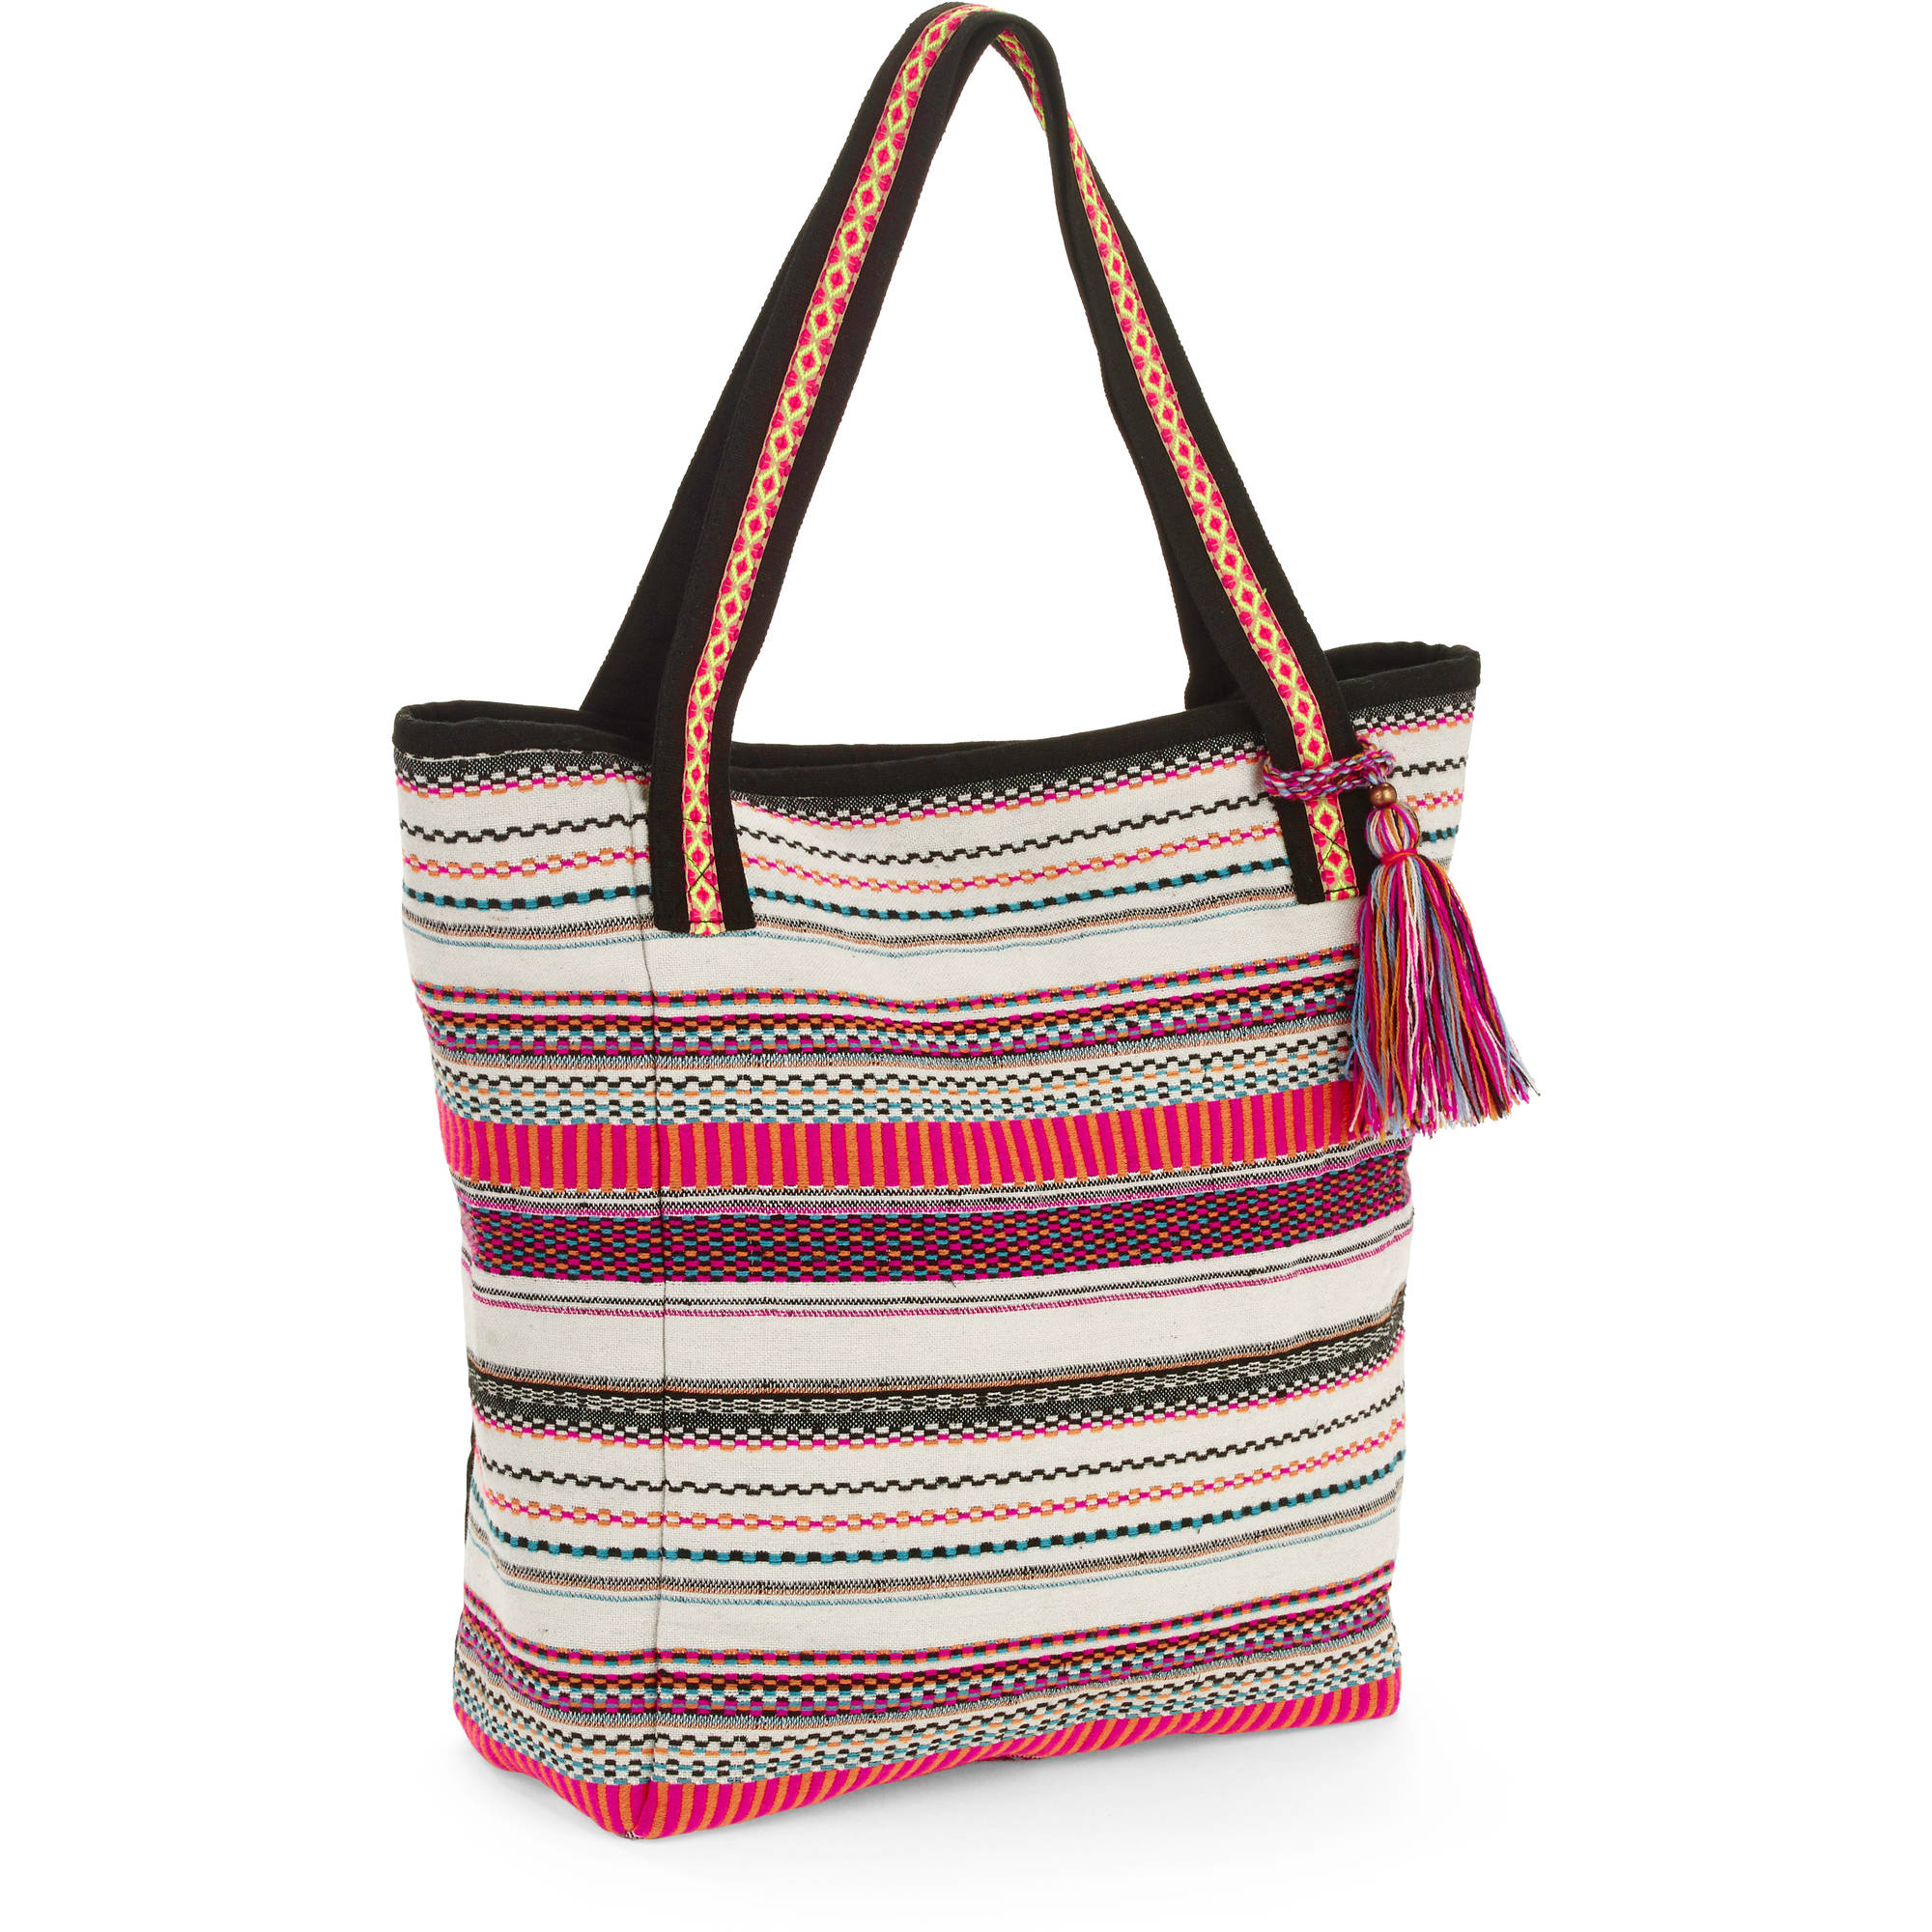 No Boundaries Women's woven Tote